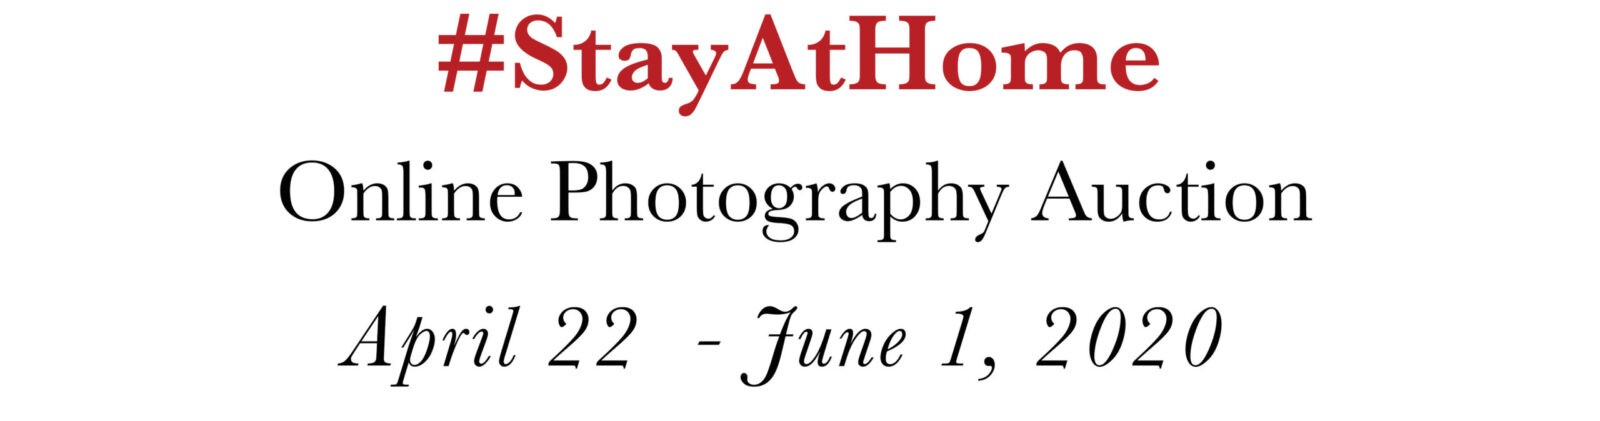 stay at home onine photography auction